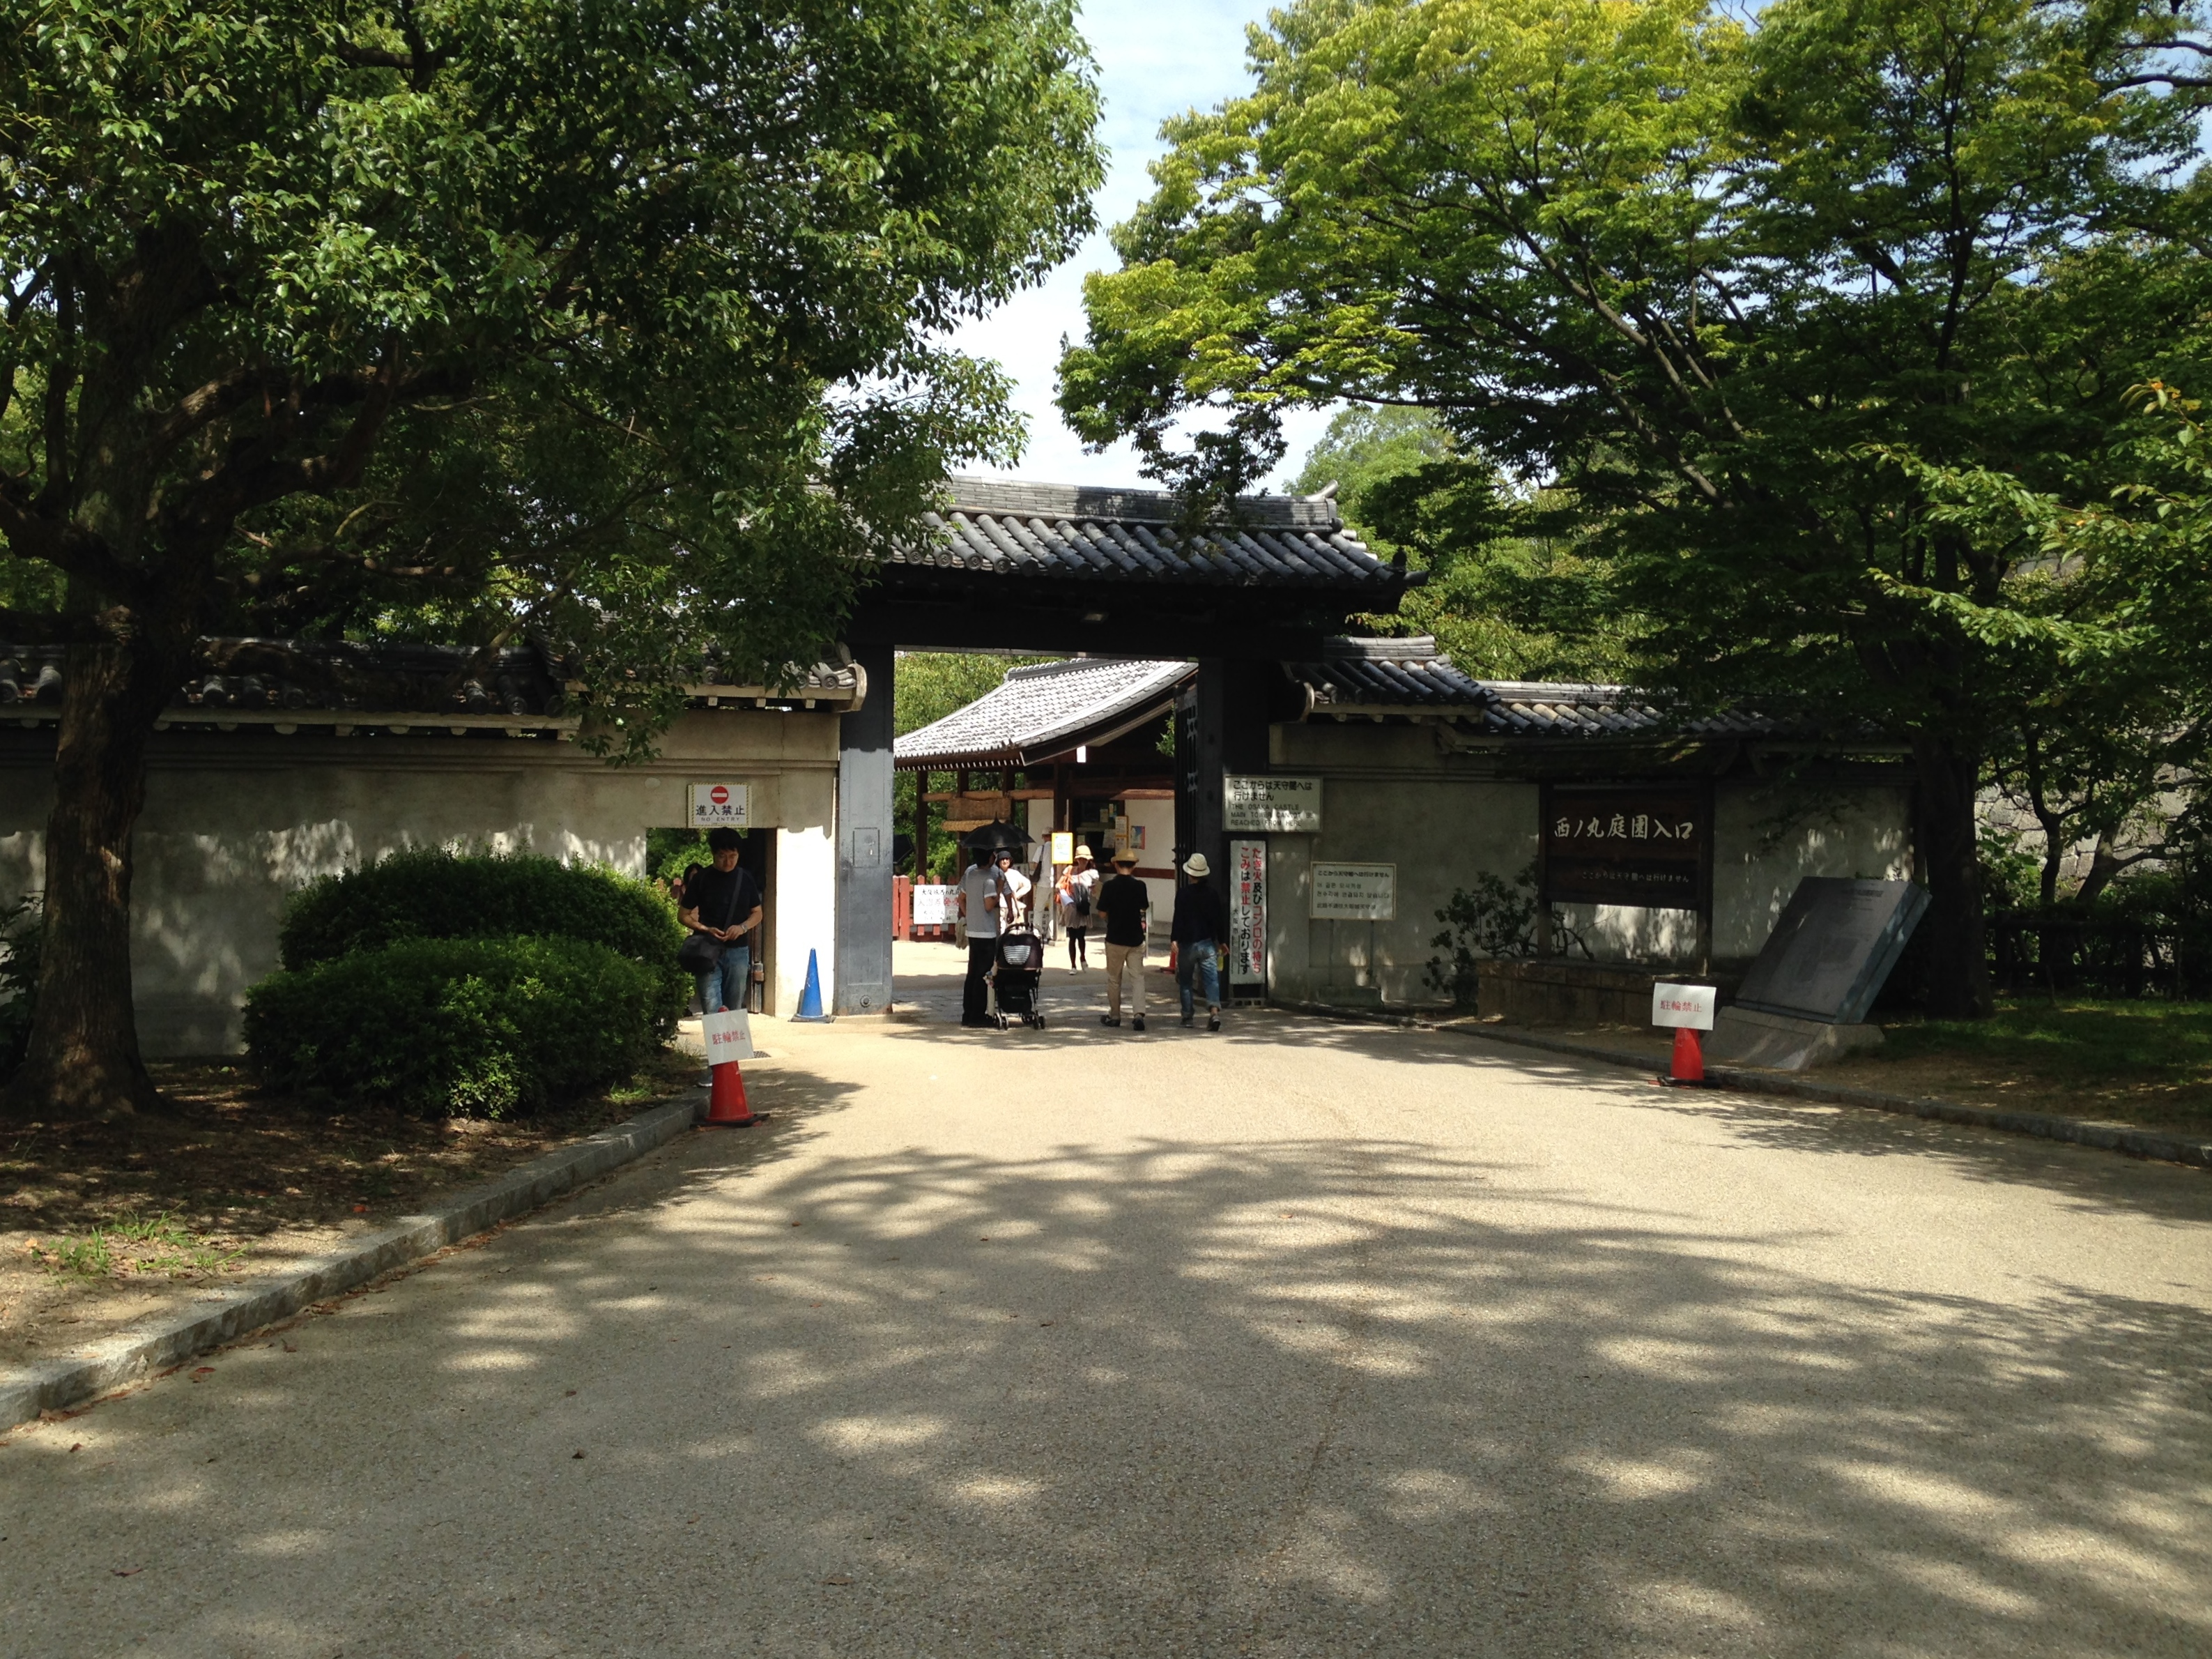 File:Gate of Nishinomaru Garden in Osaka Castle.JPG